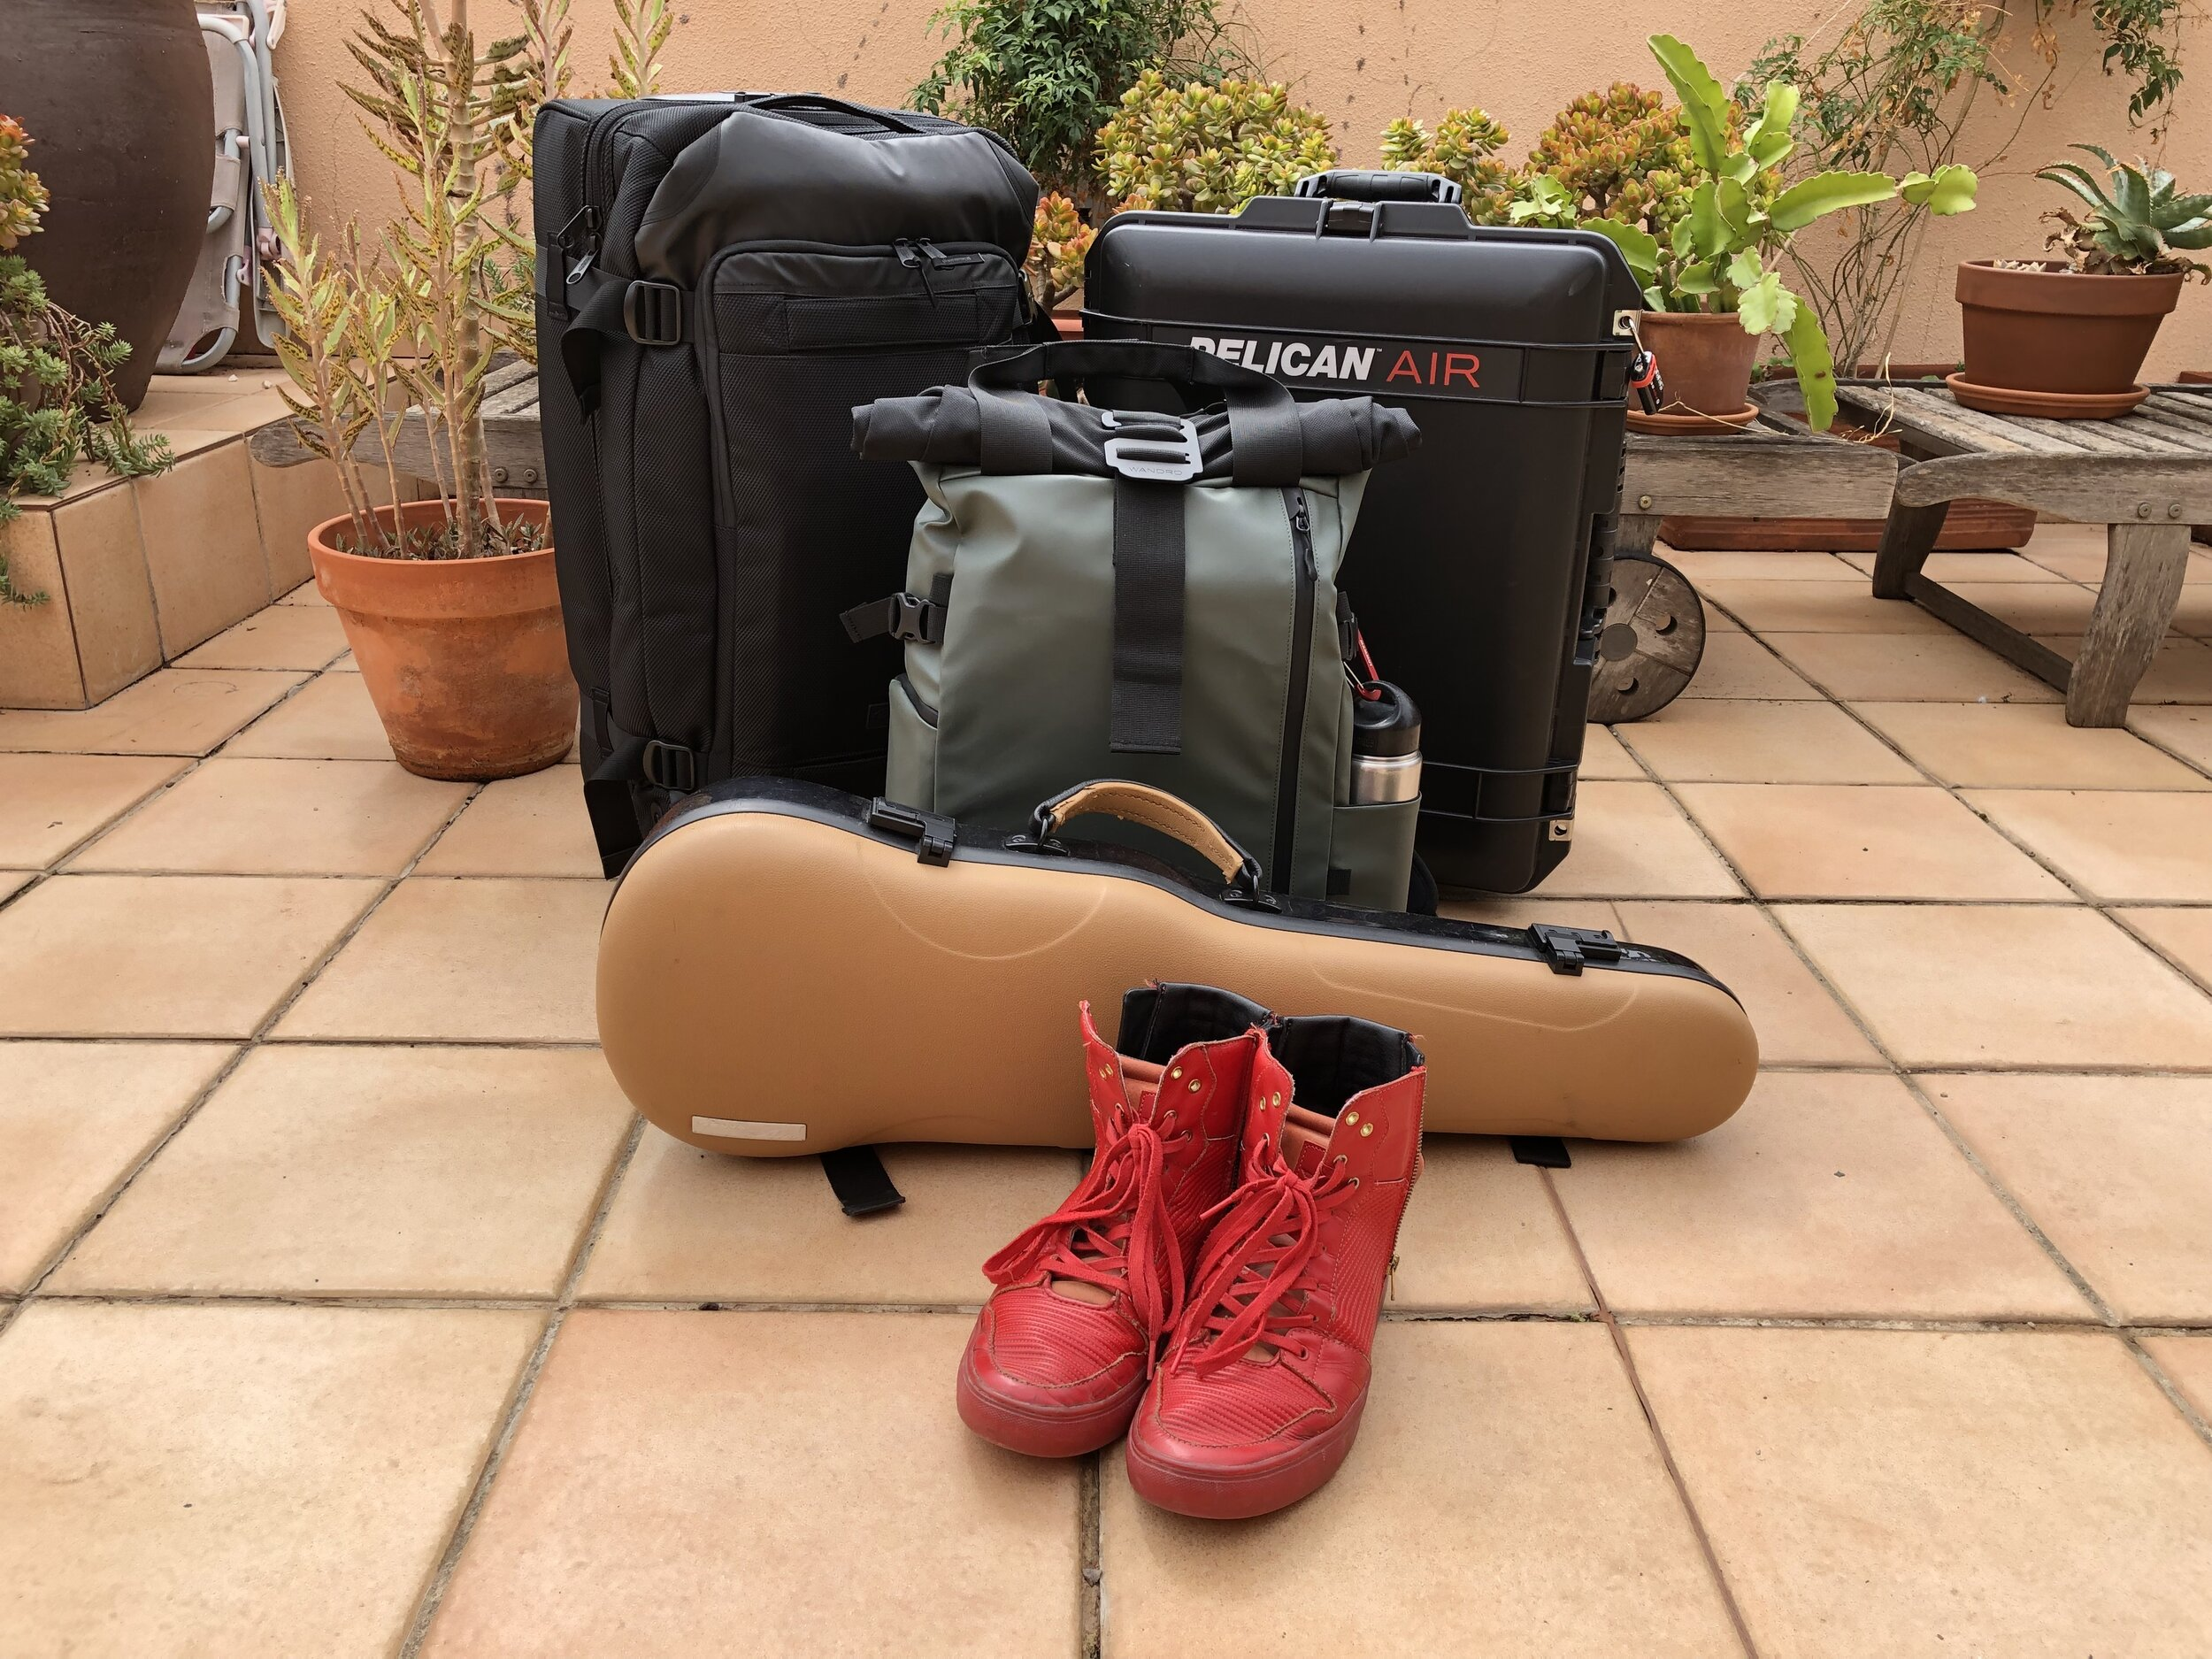 One bag for clothes, one case for A/V gear, one backpack for day trips & quick access, one case for a 5-string fiddle, and one pair of red shoes to rule them all.